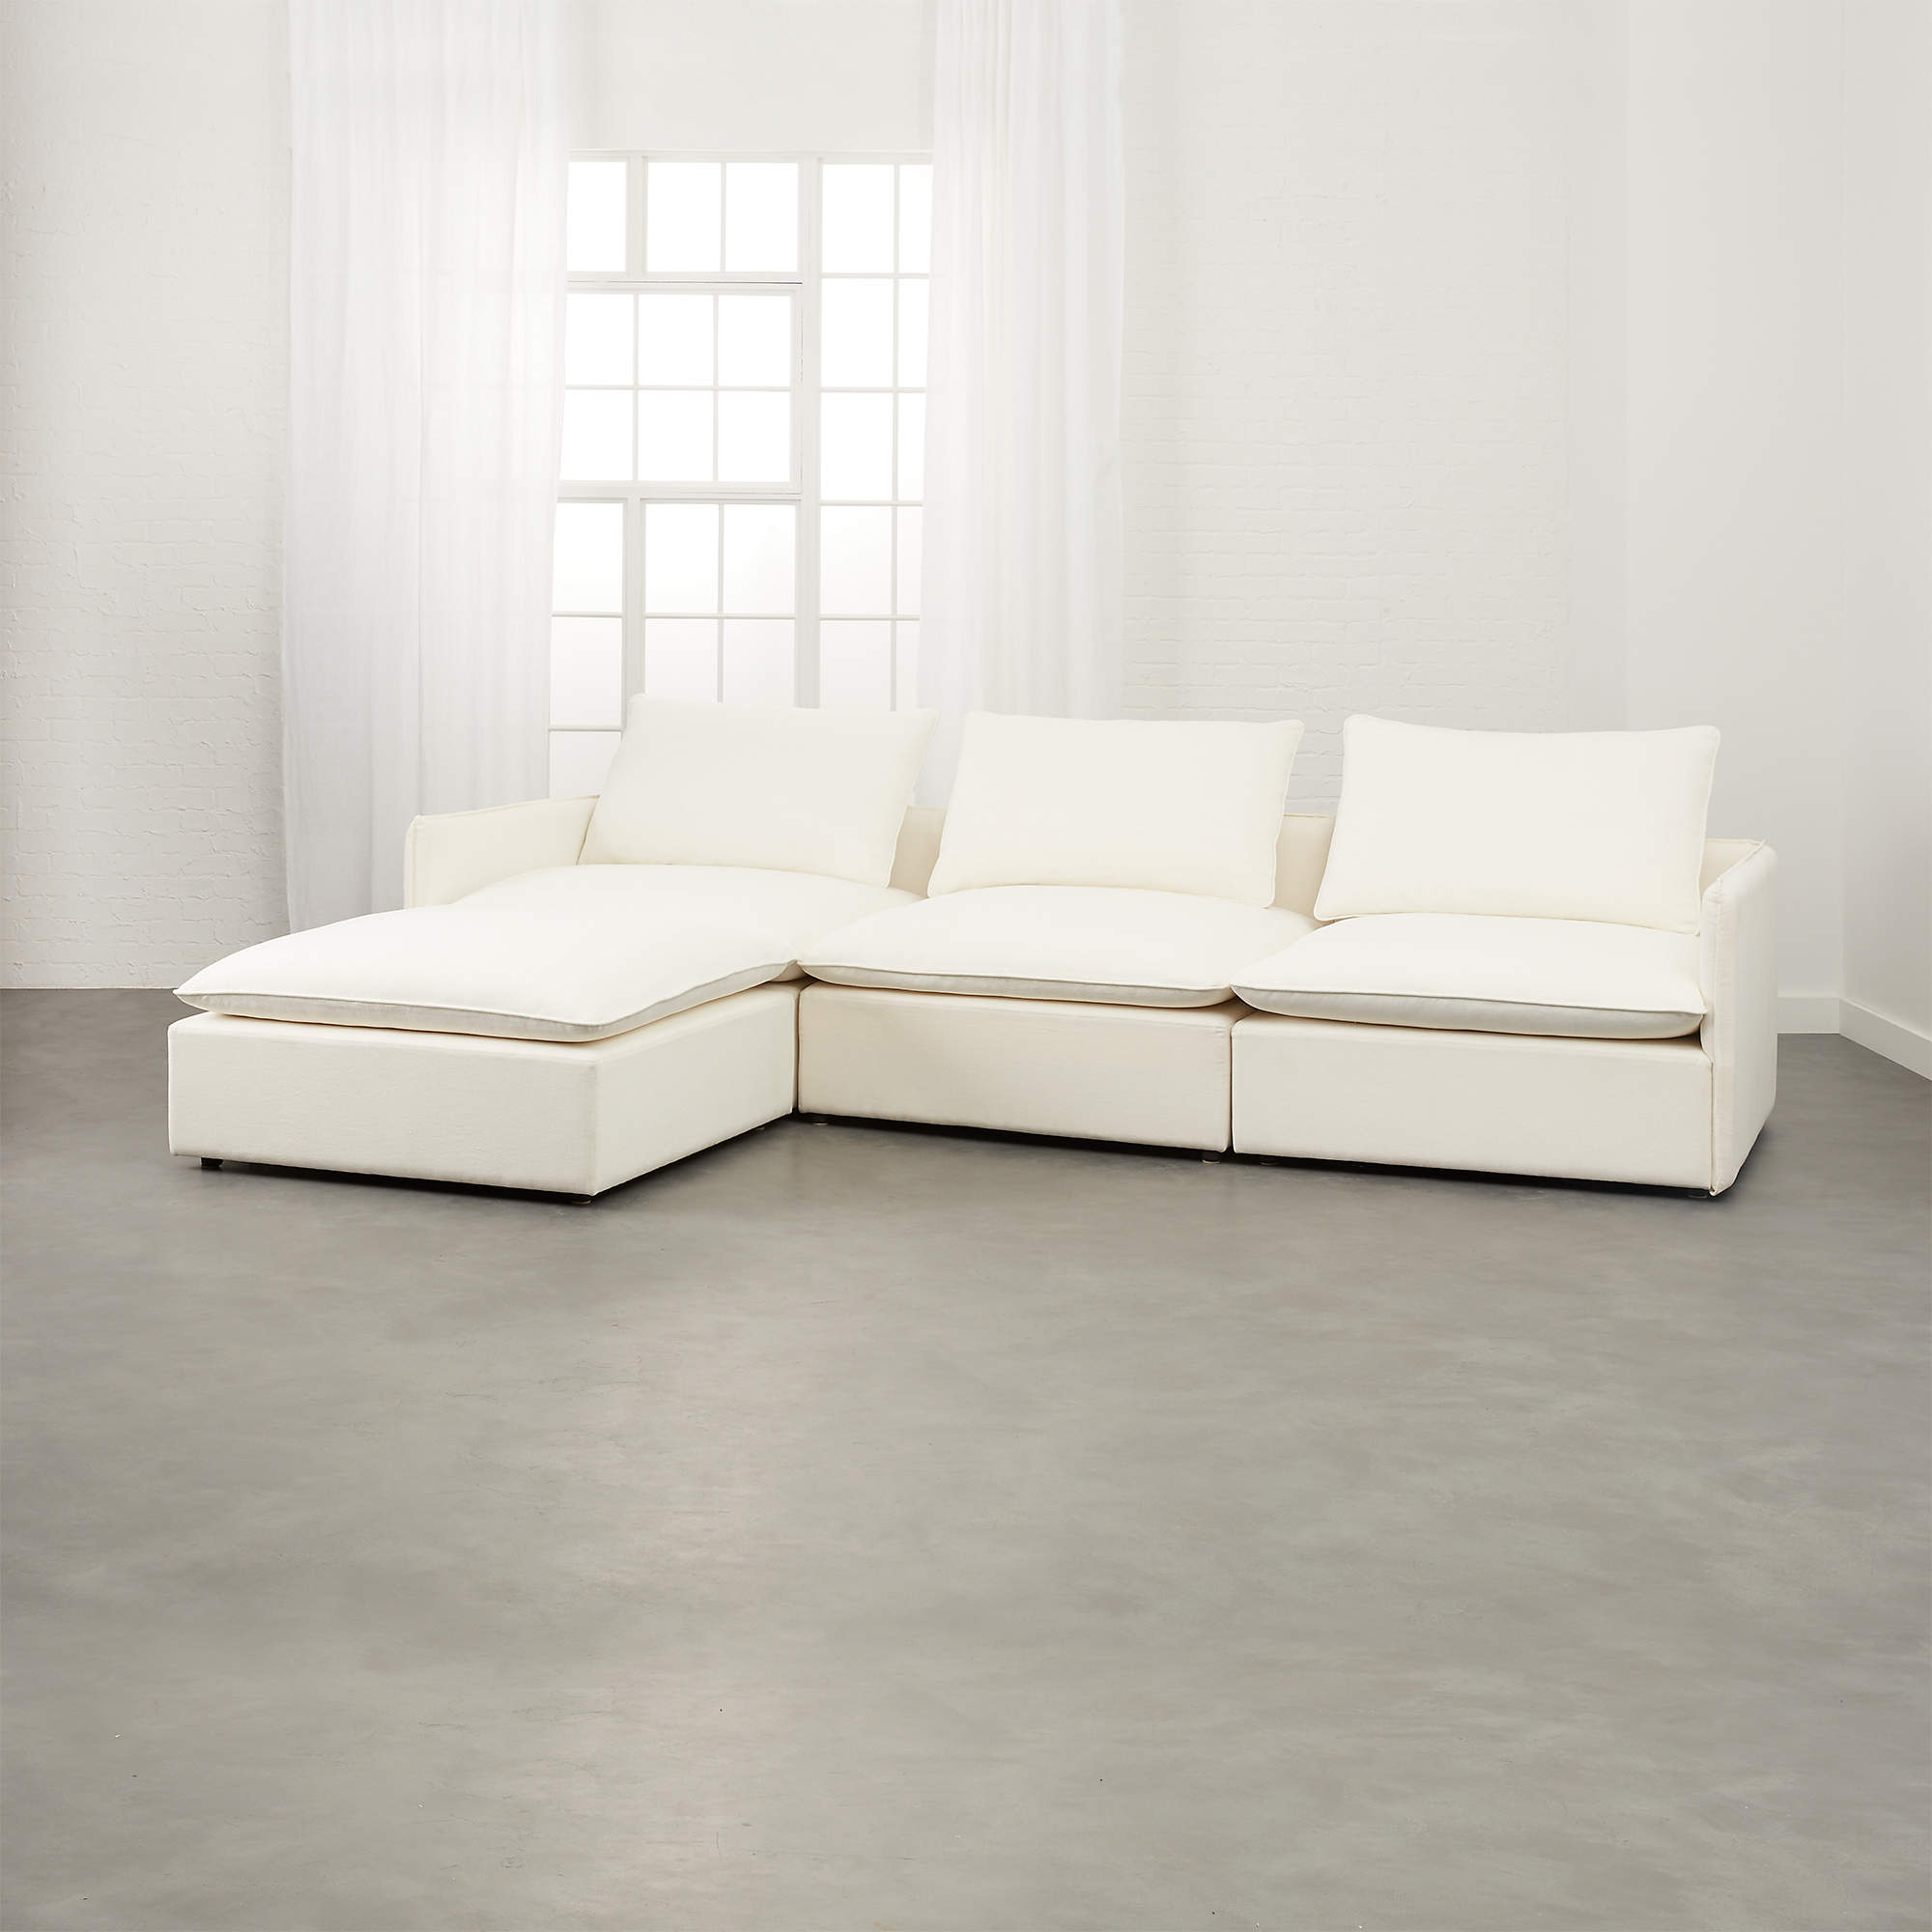 LUMIN WHITE LINEN 4-PIECE SECTIONAL SOFA, Dupes for the Restoration Hardware cloud couch, RH cloud couch dupes, affordable versions of the Restoration Hardware cloud couch, modular sofa dupes, restoration hardware cloud sofa, CLOUD MODULAR SOFA CHAISE SECTIONAL, restoration hardware dupes, affordable sectional sofas, Red Soles and Red Wine, Jennifer Worman